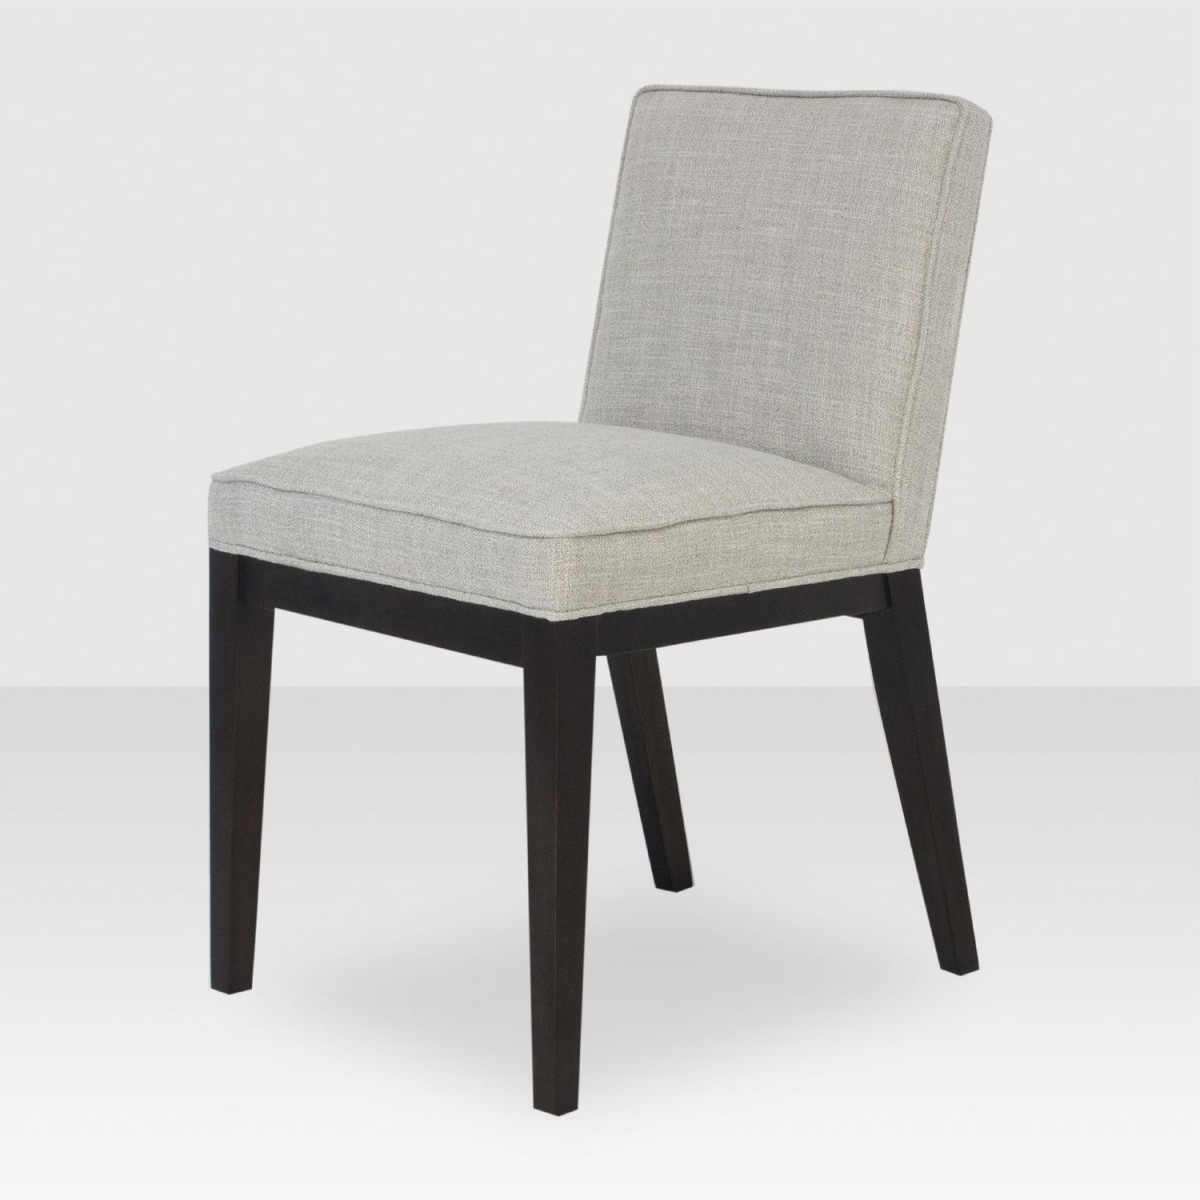 Oliver Side Chairs Intended For Trendy Oliver Side Chair Ash – Elte (View 10 of 20)